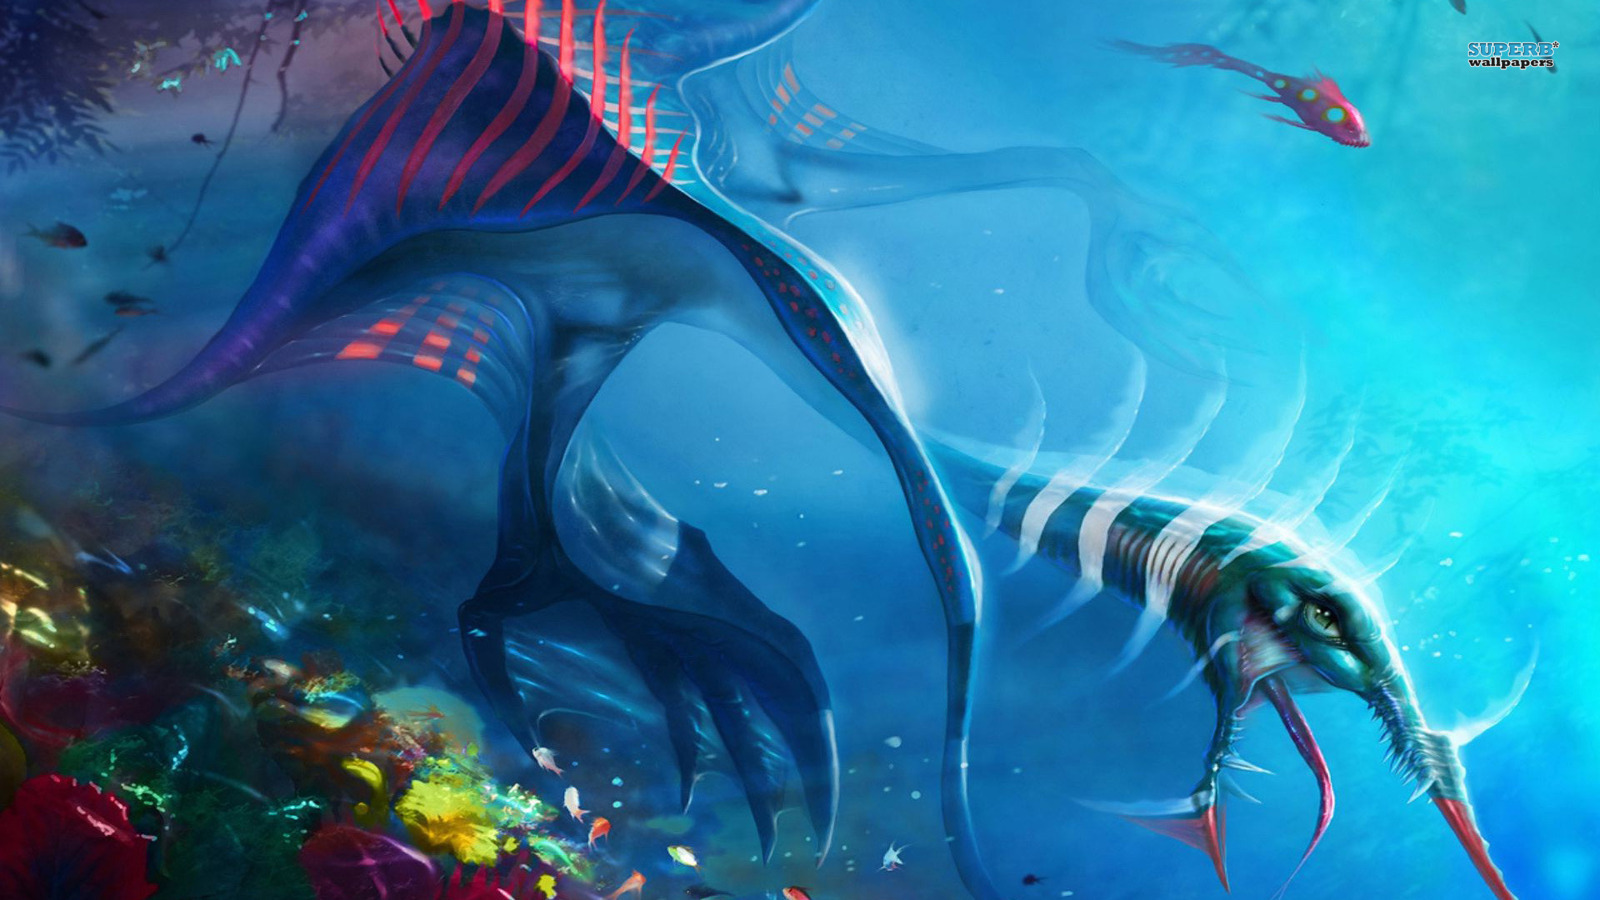 Fantasy Images Underwater Creatures HD Wallpaper And Background Photos